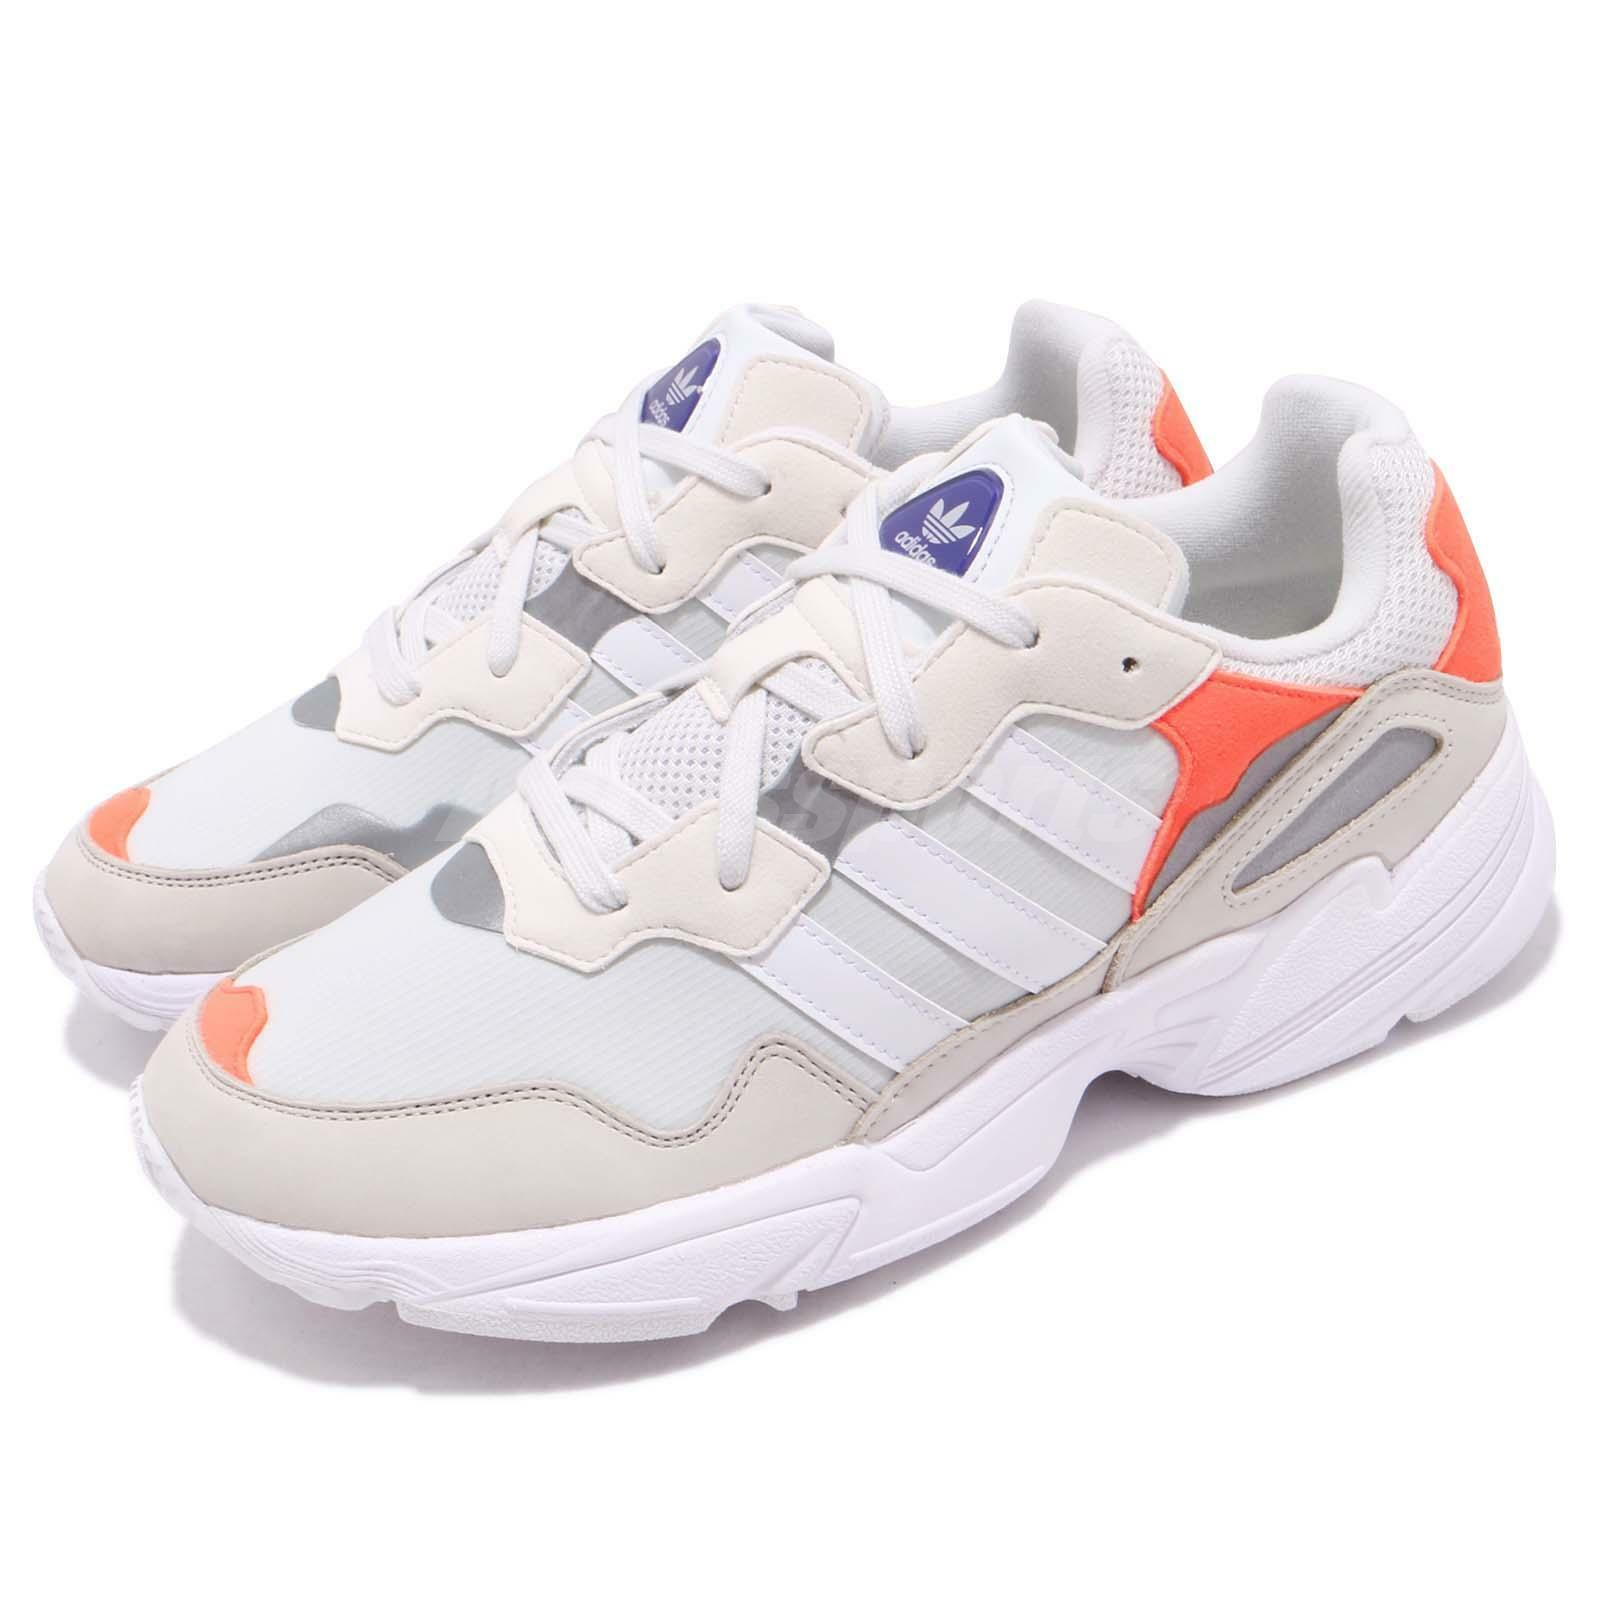 Adidas Adidas Adidas Originals Yung-96 White orange Men Running Daddy shoes Sneakers F97179 93d721